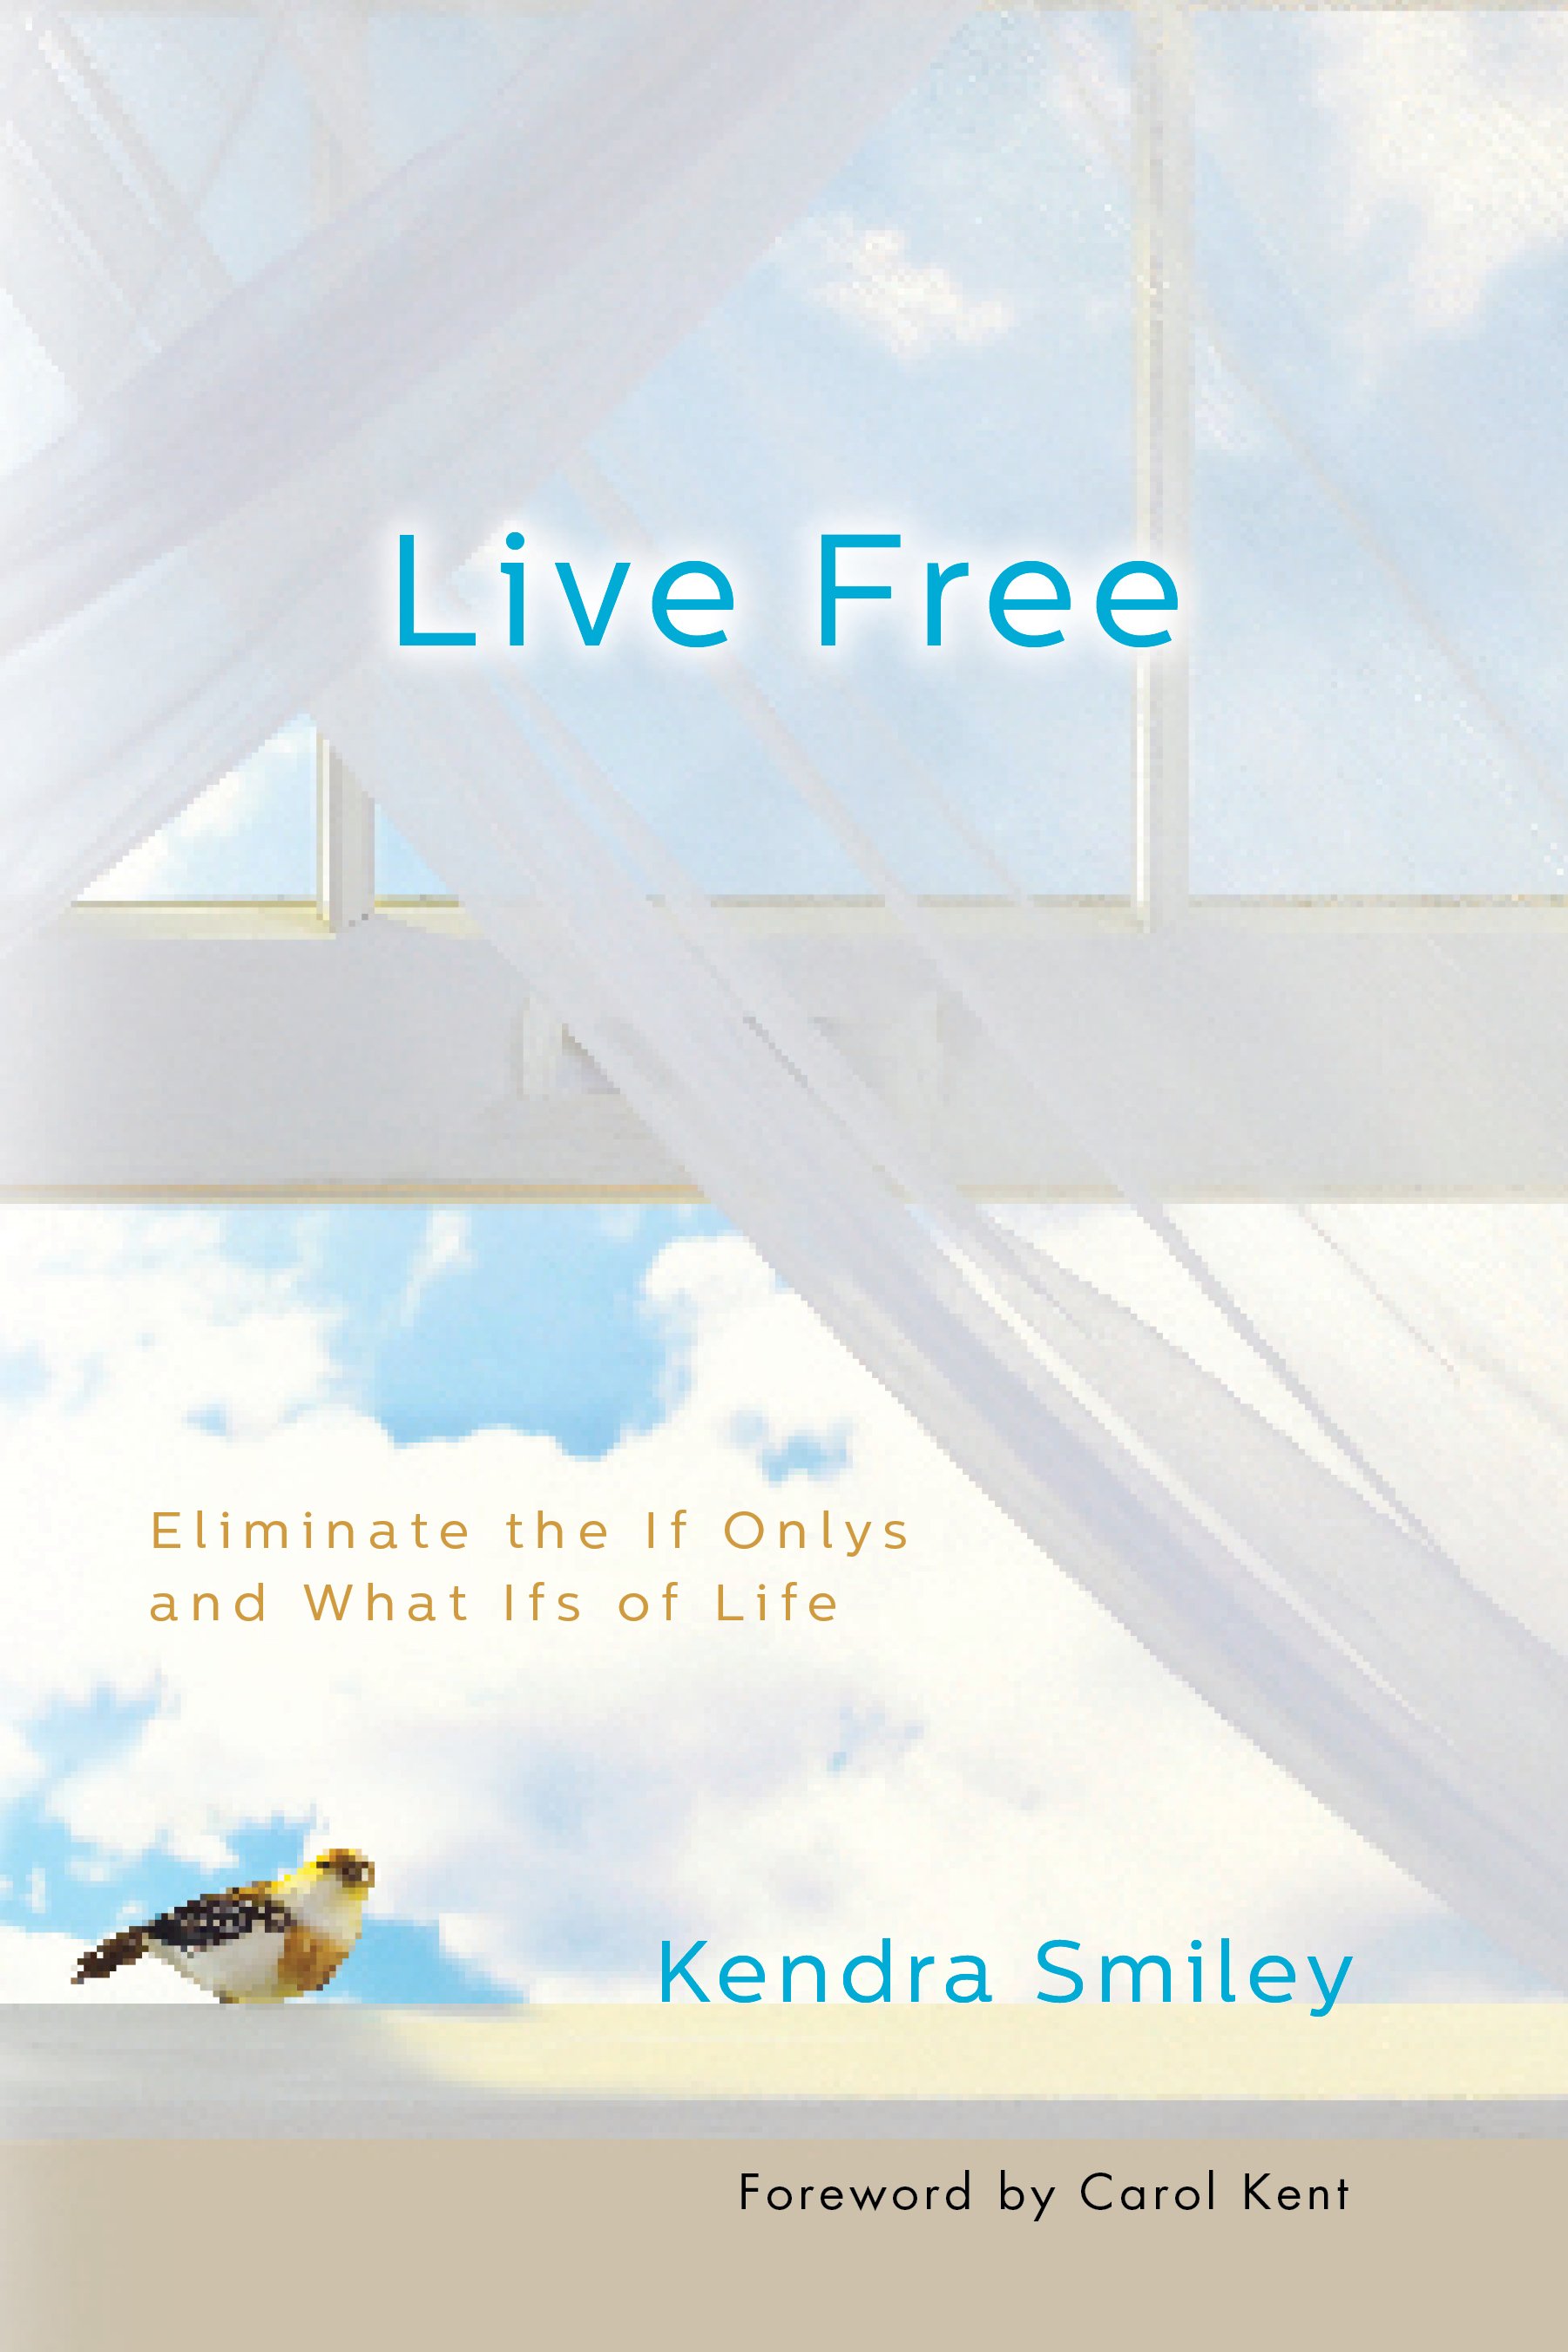 Live Free SAMPLER: Eliminate the If Onlys and What Ifs of Life